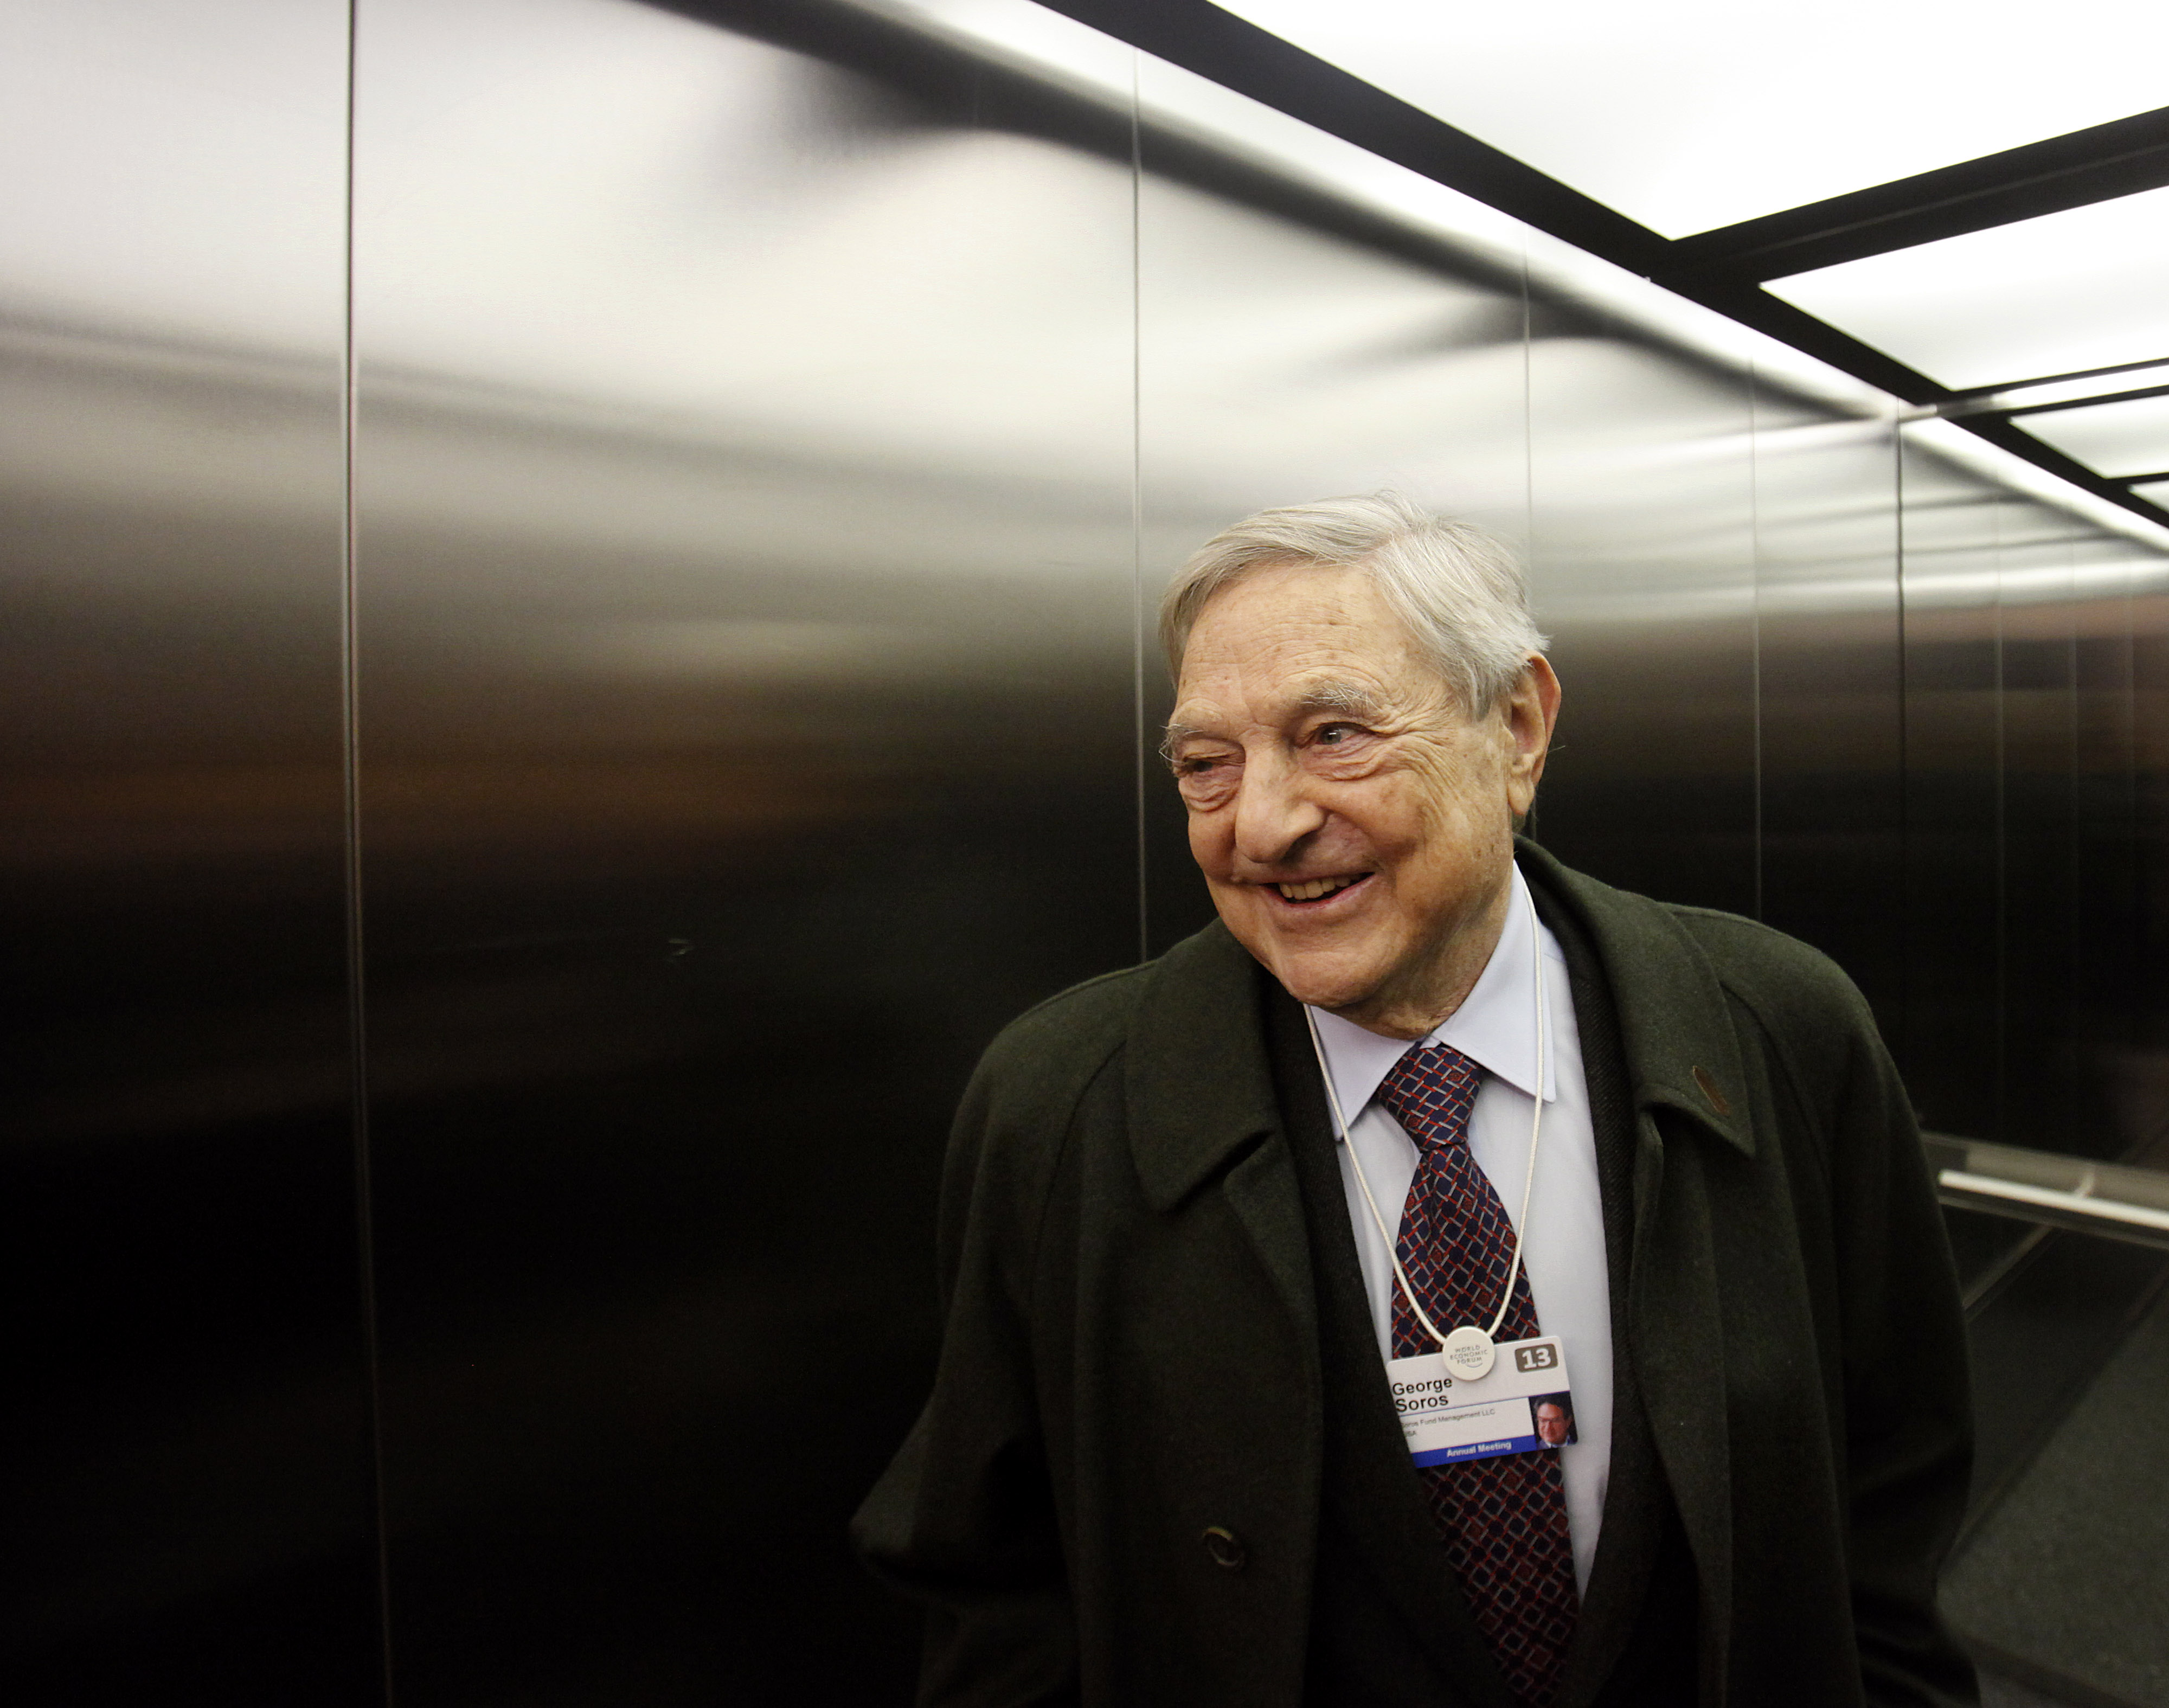 George Soros, the billionaire investor and founder of Soros Fund Management LLC.